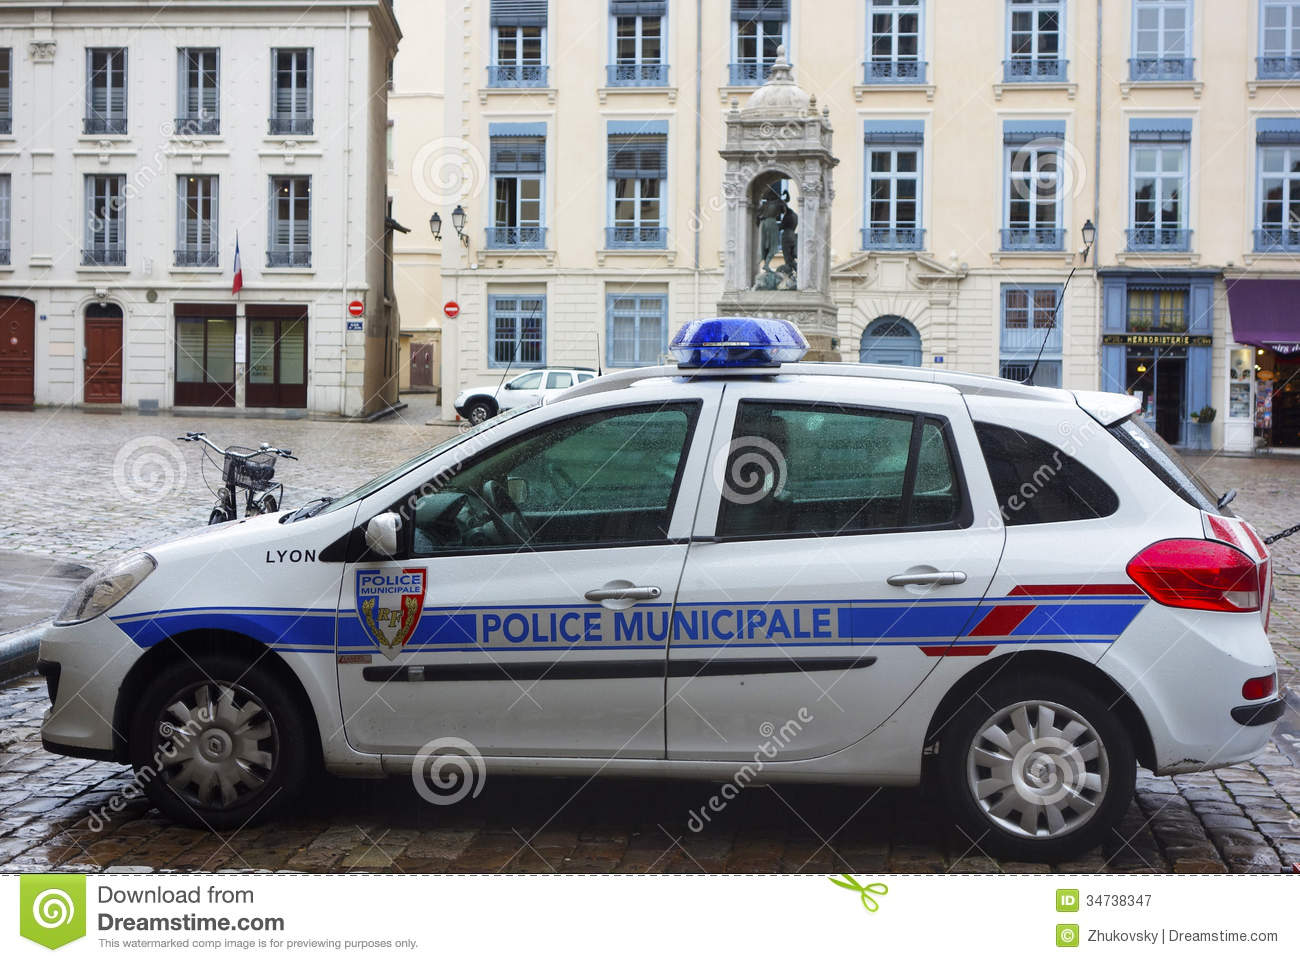 voiture de police locale lyon france photographie ditorial image 34738347. Black Bedroom Furniture Sets. Home Design Ideas